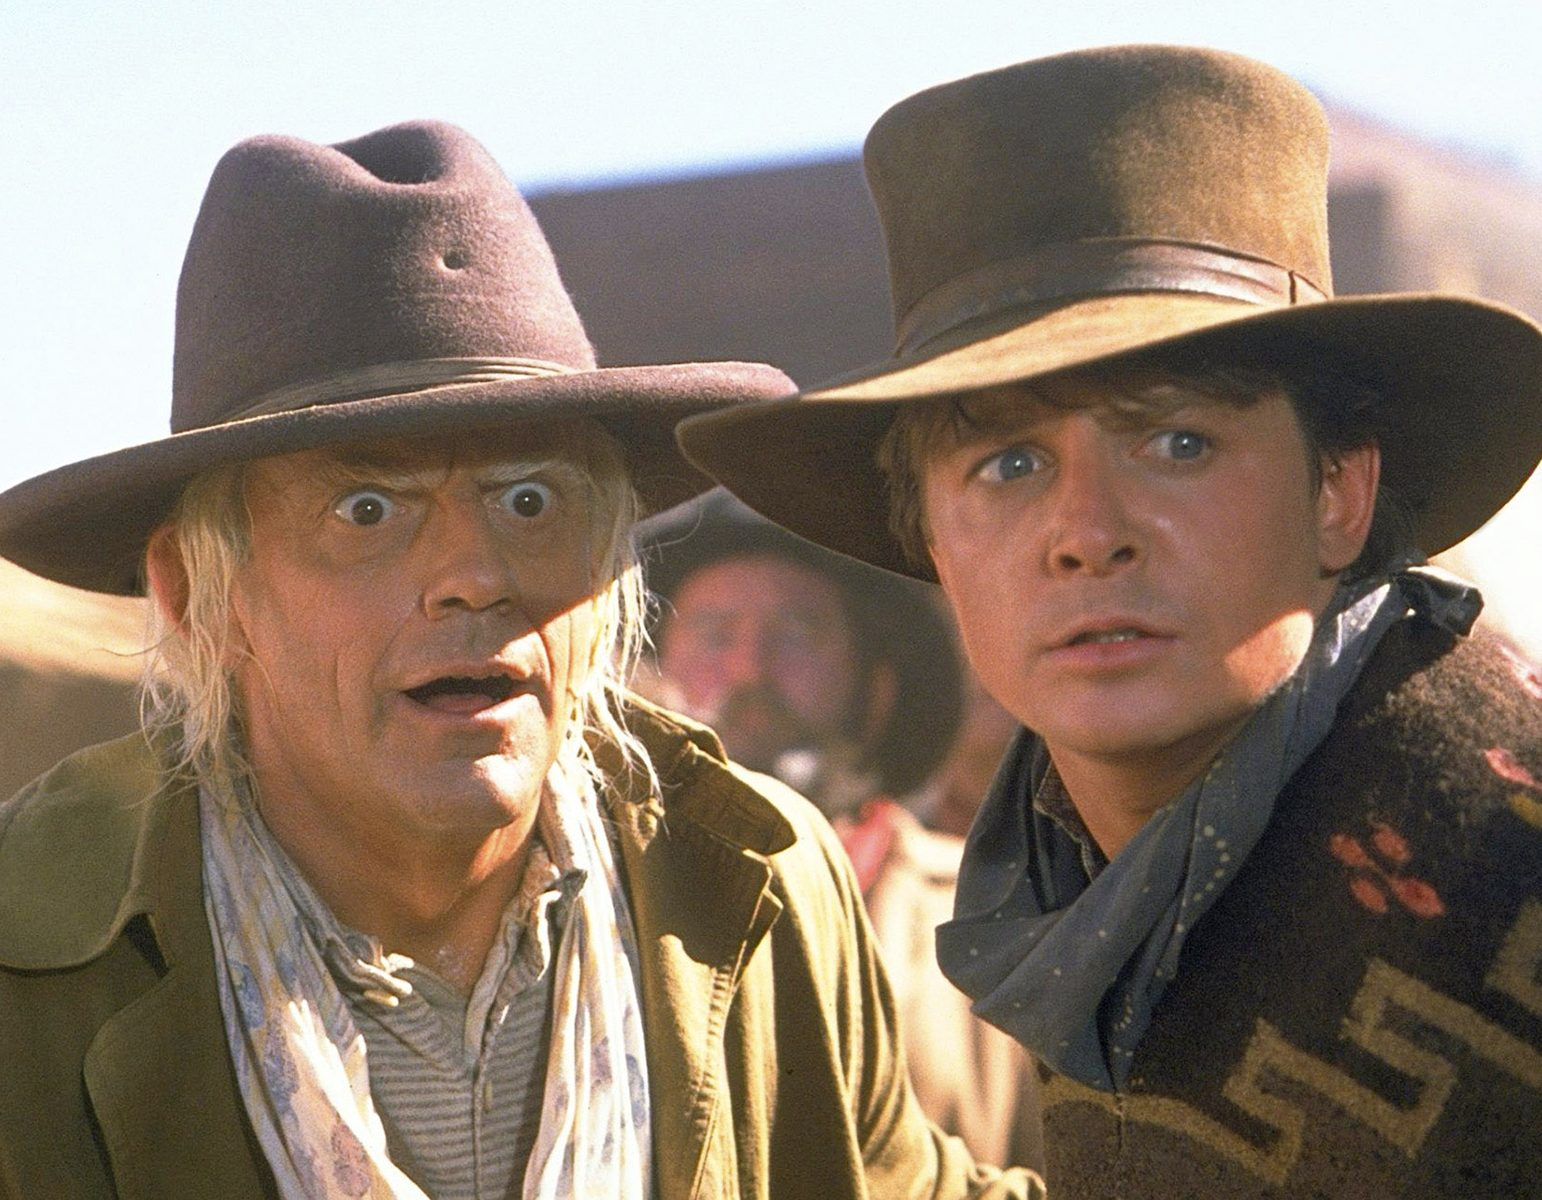 back to the future 3 today main1 200413 34382eab9b23f1906732d00fd9761ab6 e1617113022584 20 Fascinating Futuristic Facts About Back to the Future Part II